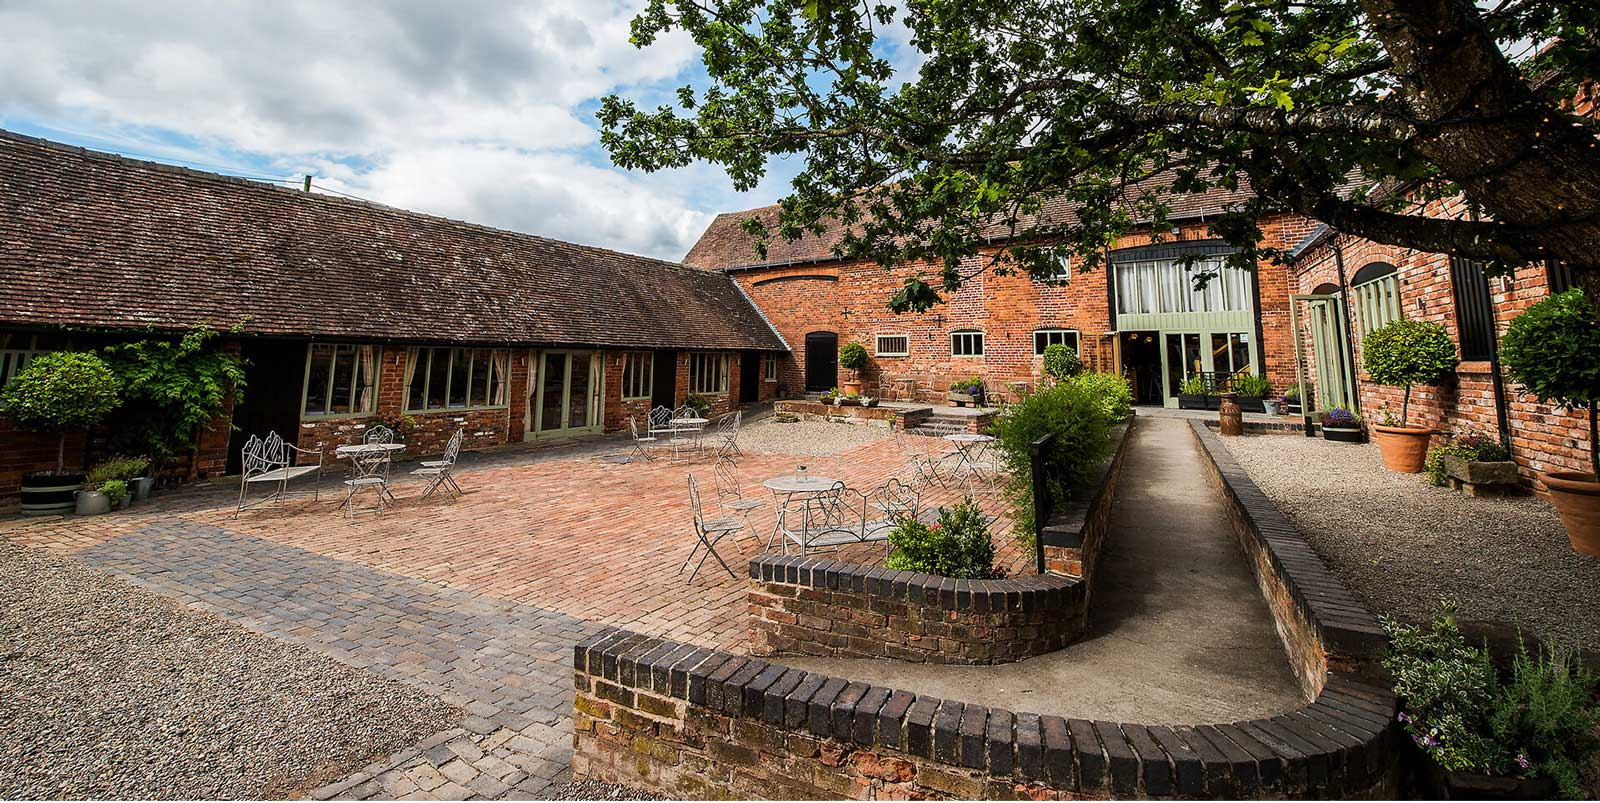 Curradine Barns is the only venue to look at if you're looking to be surrounded with beauty at a barn wedding venue in Worcestershire